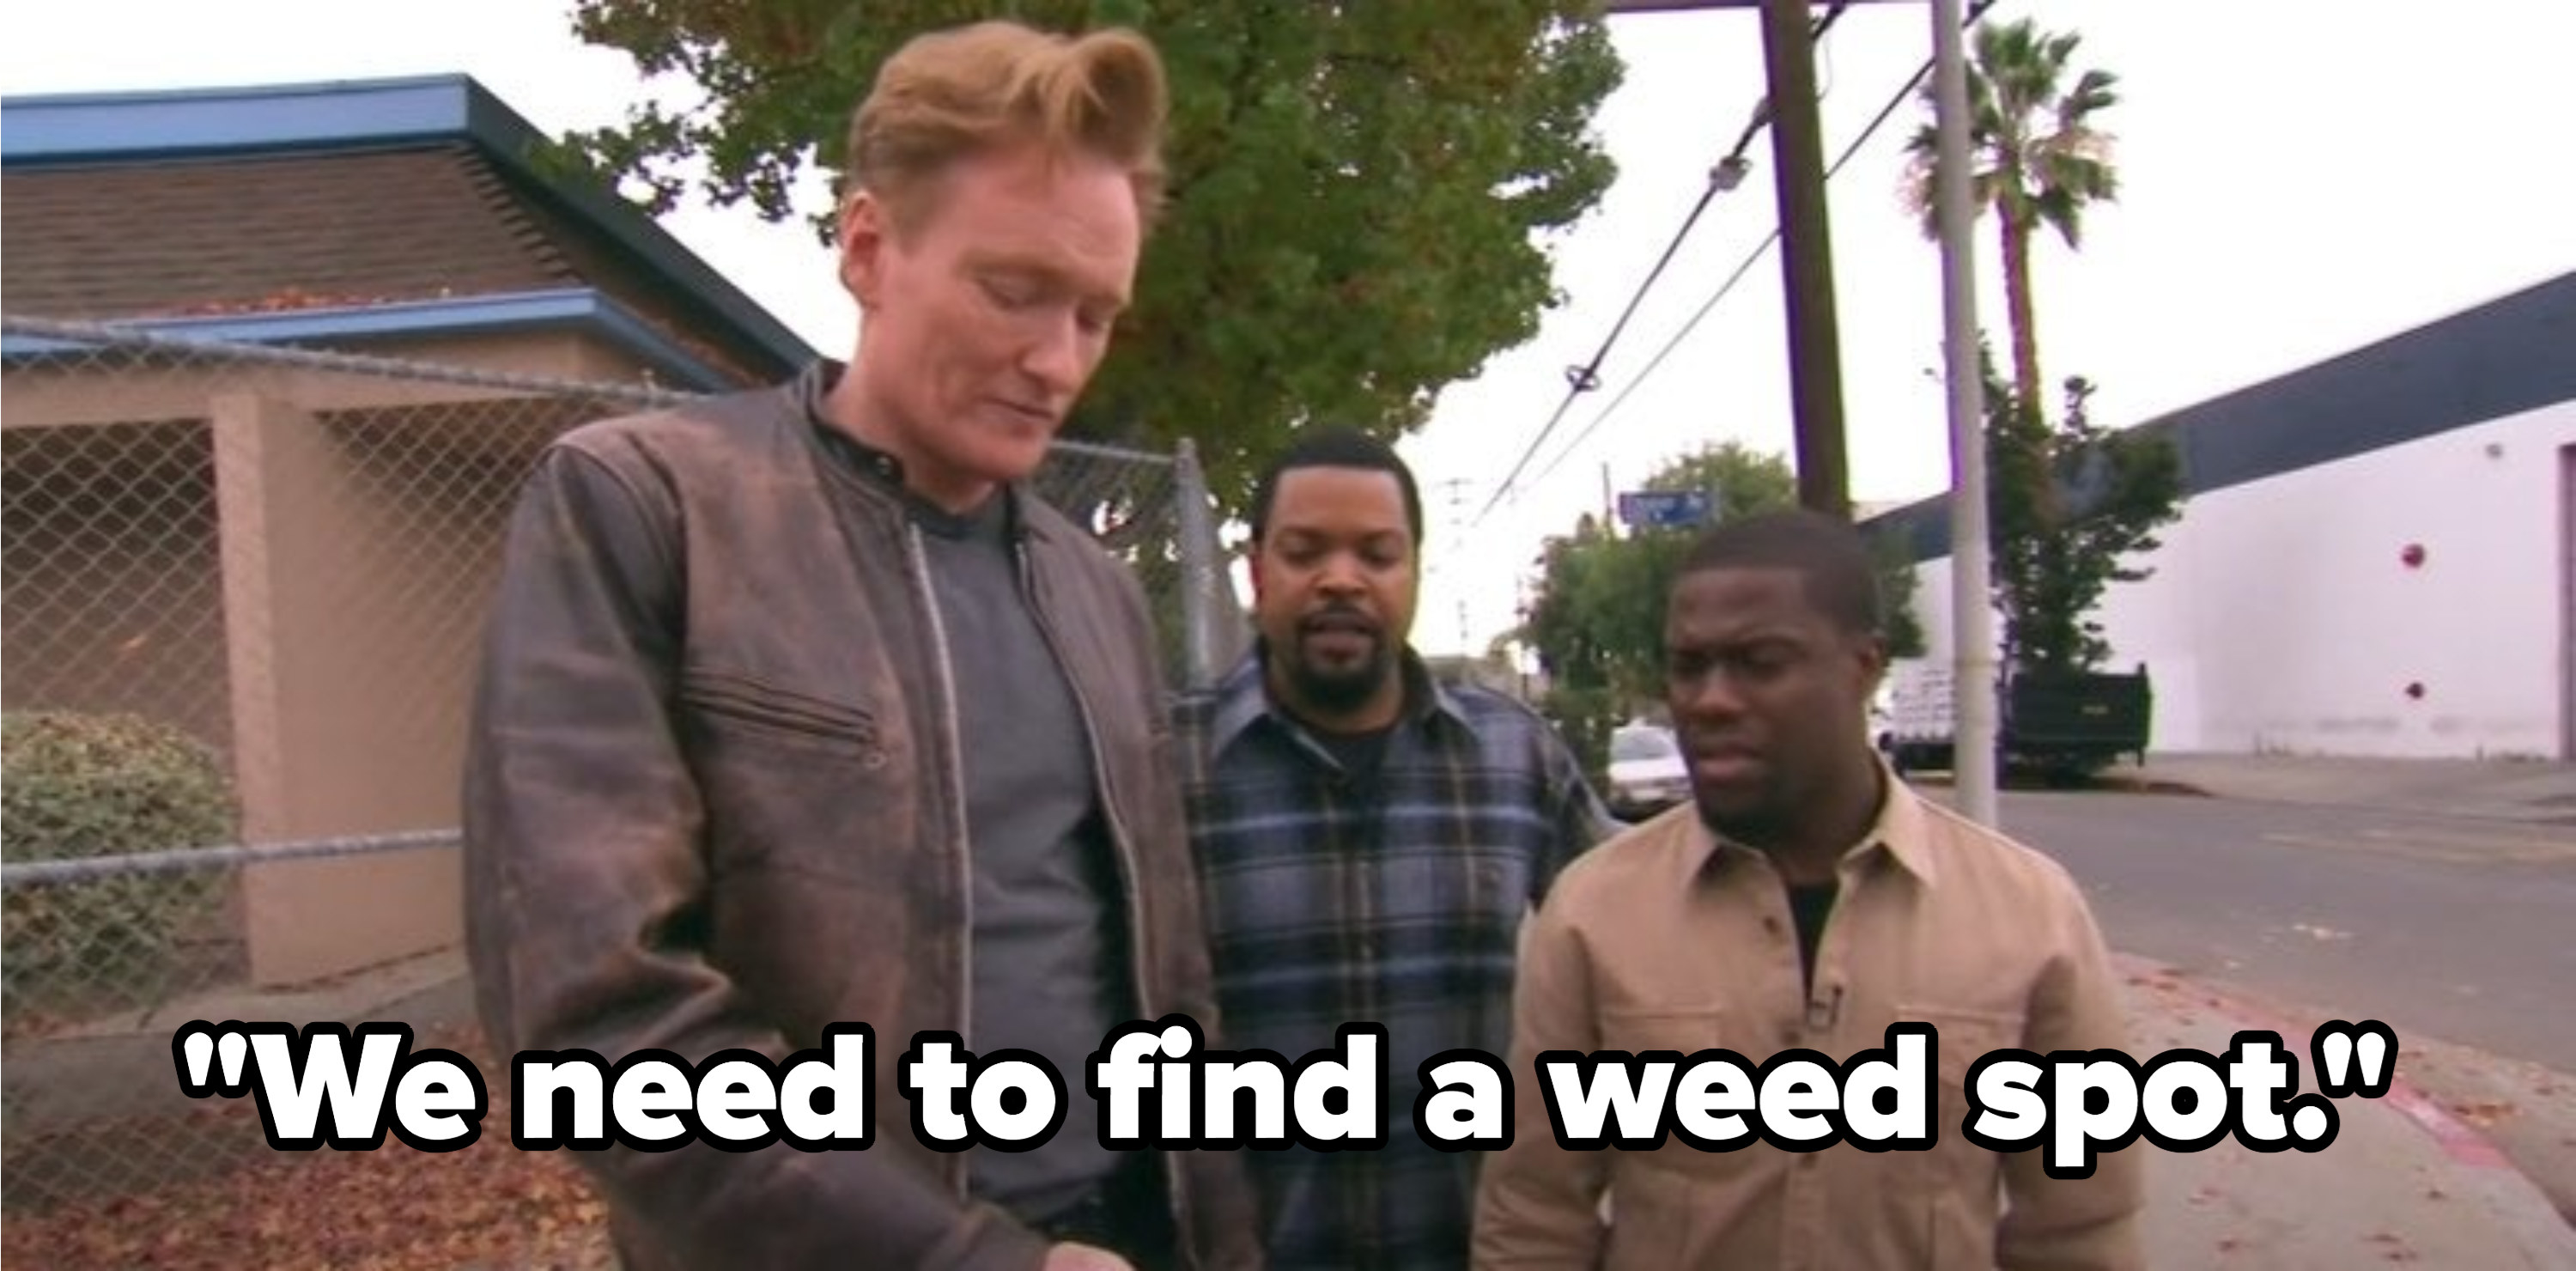 Conan, Ice Cube, and Kevin Hart looking at a phone on a street corner